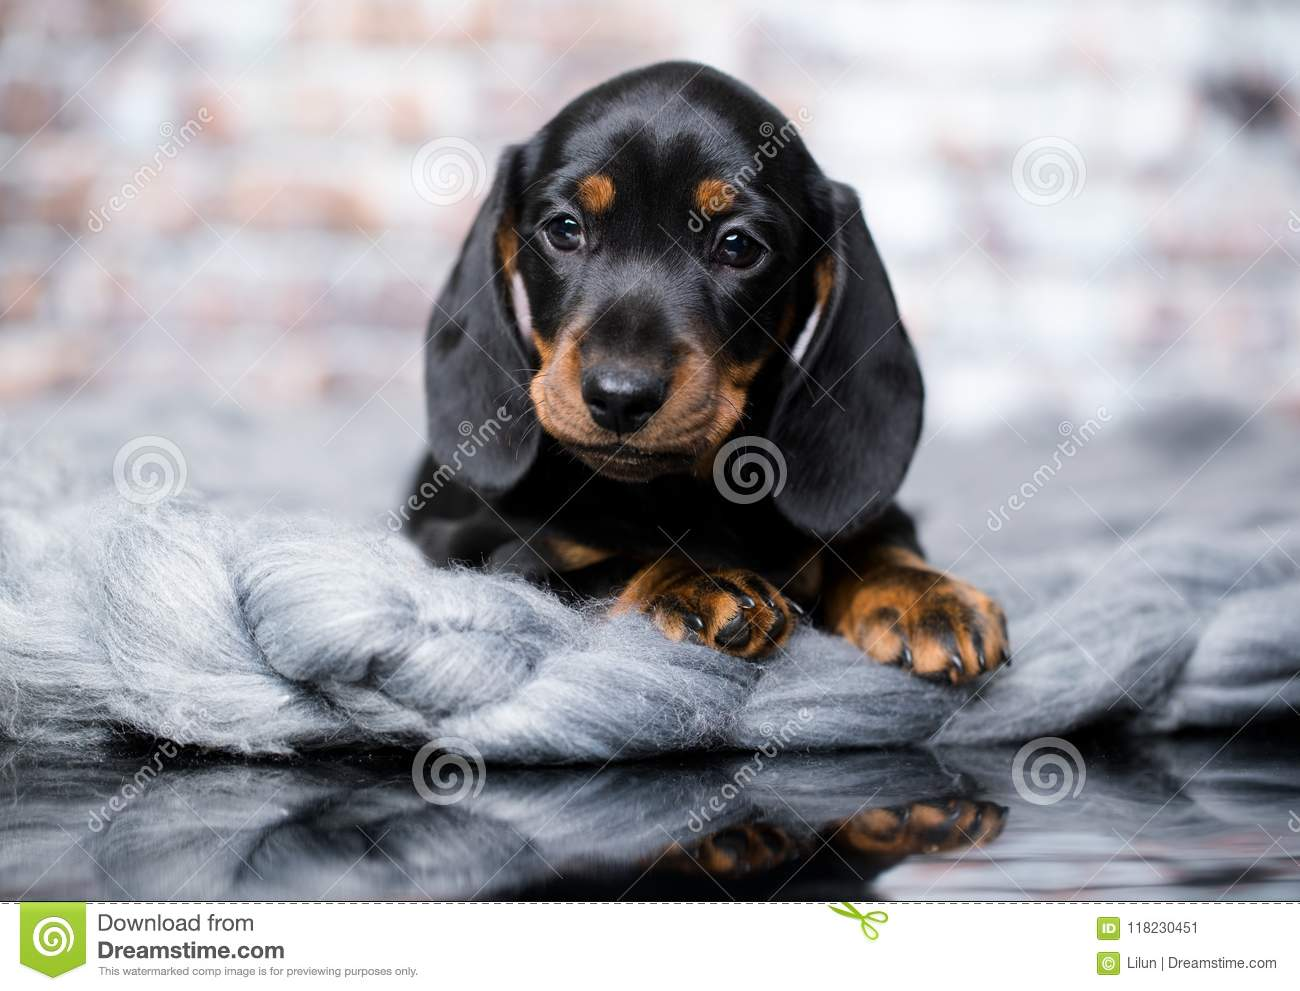 Dachshund Dog Black Tan Stock Image Image Of Daisy 118230451